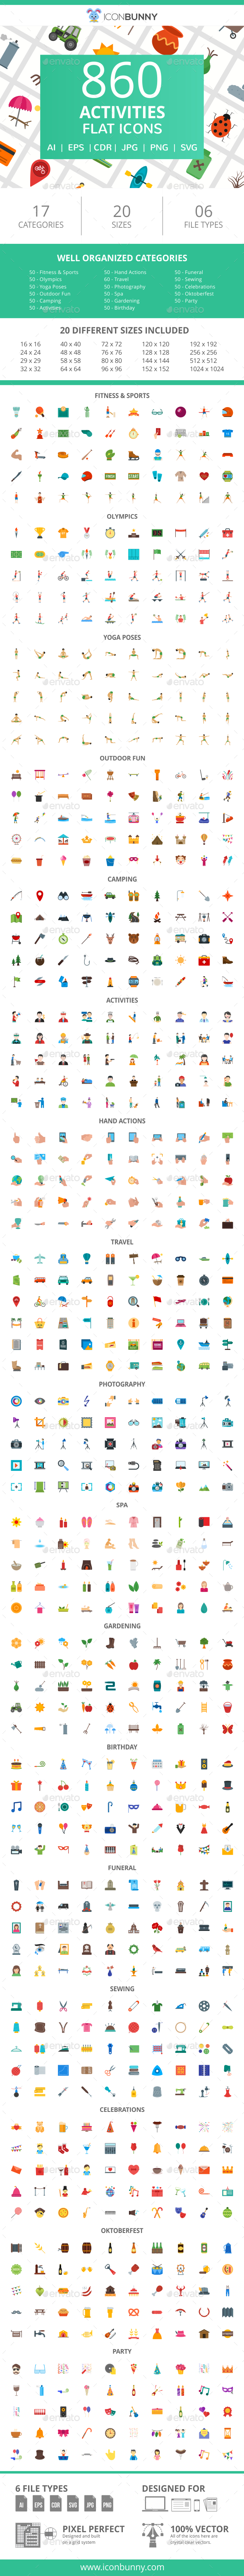 860 Activities Flat Icons - Icons